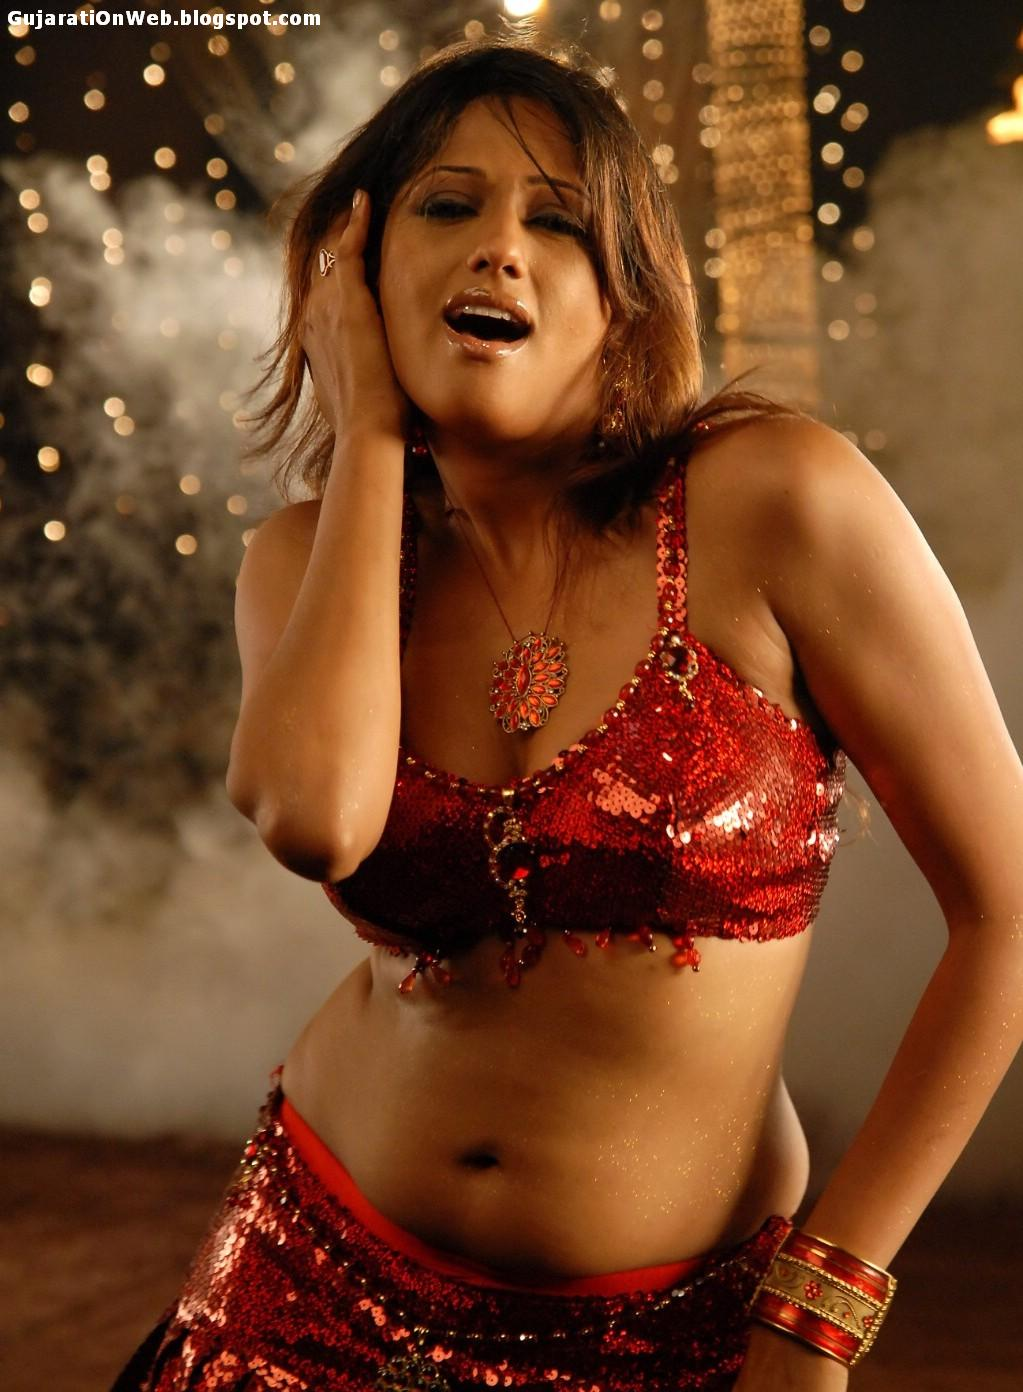 Gujarati On Web Brinda Parekh Doing Slutry Dance Pics-2655